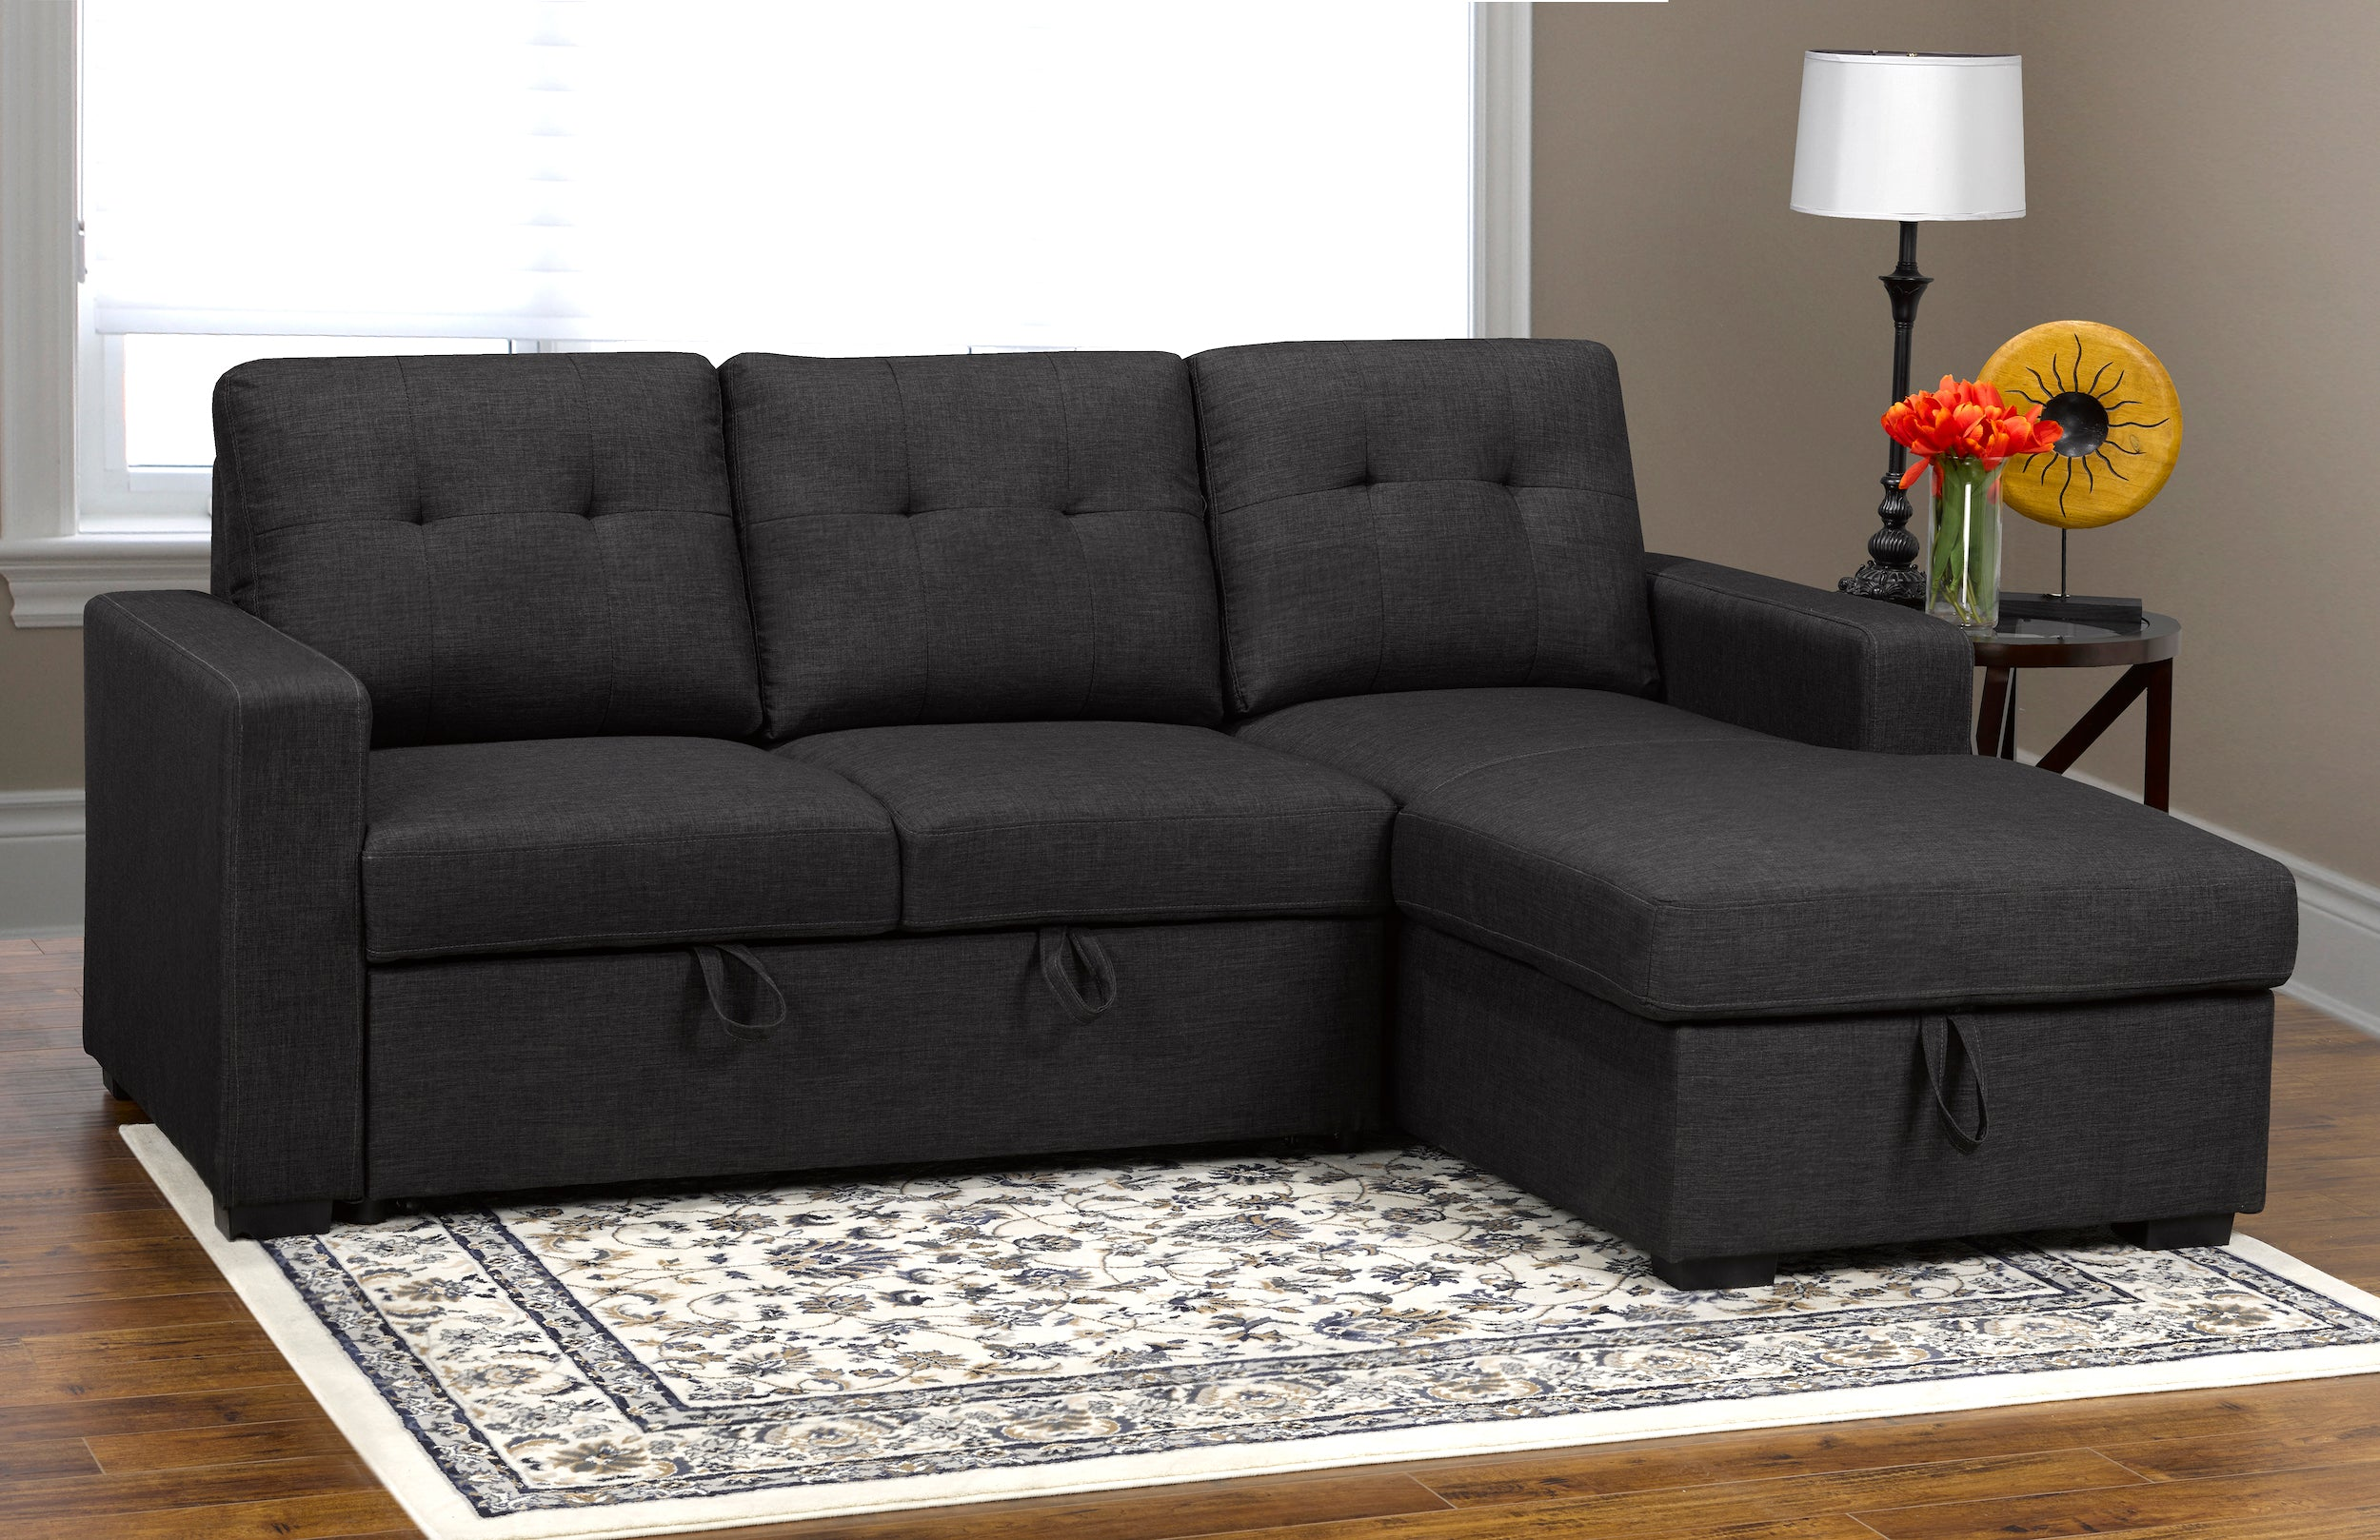 Anthony LHF/RHF Sectional w/ Pullout Bed & Storage - Dark Grey Linen | Candace and Basil Furniture